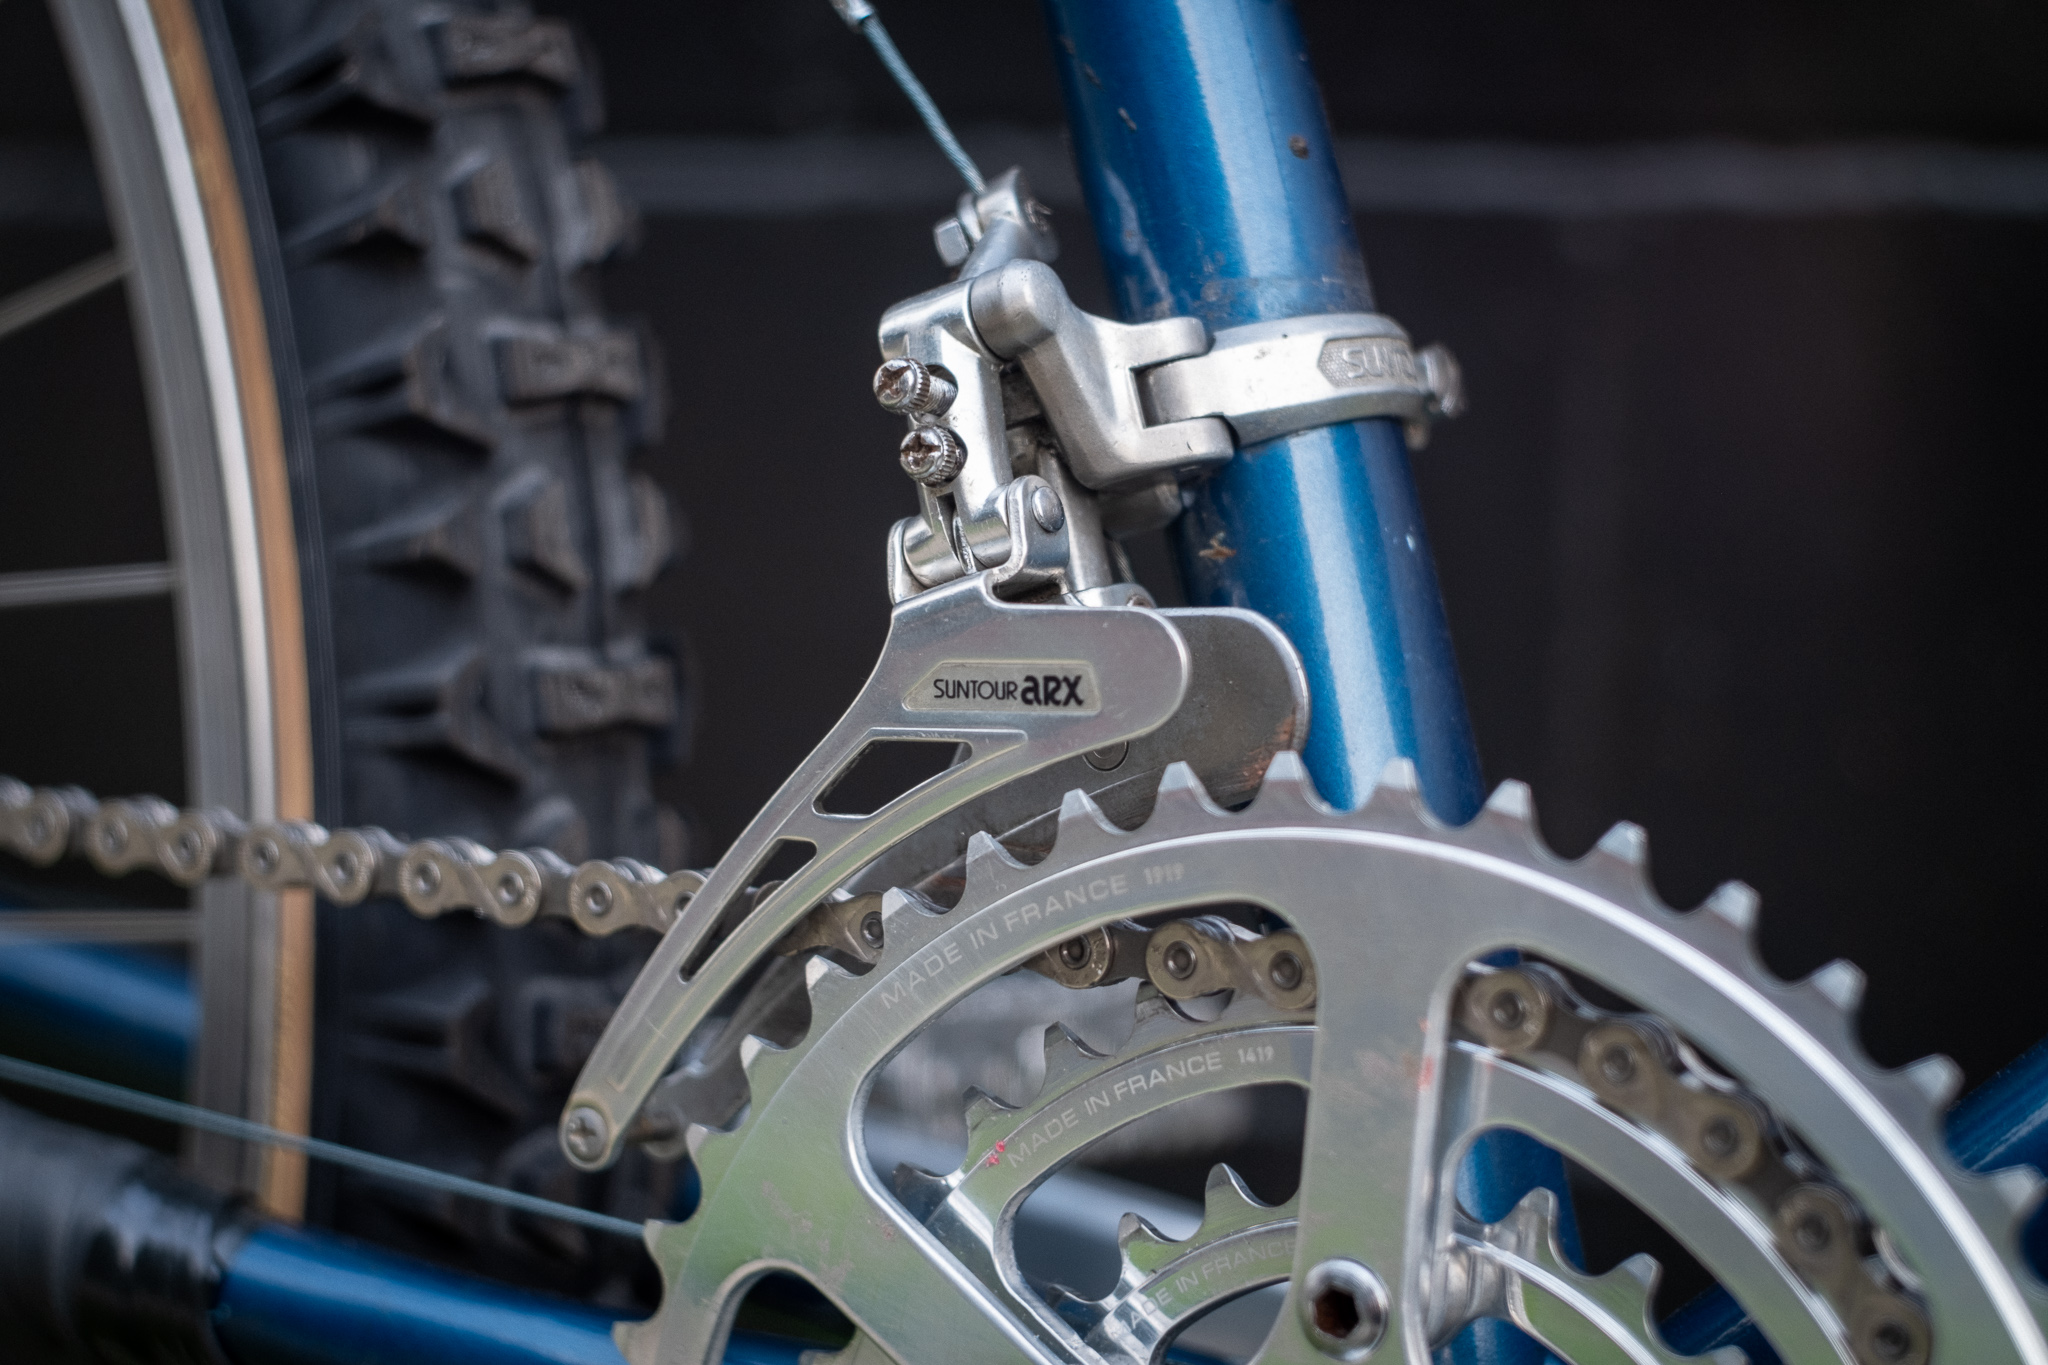 1981 Specialized Stumpjumper front derailleur detail